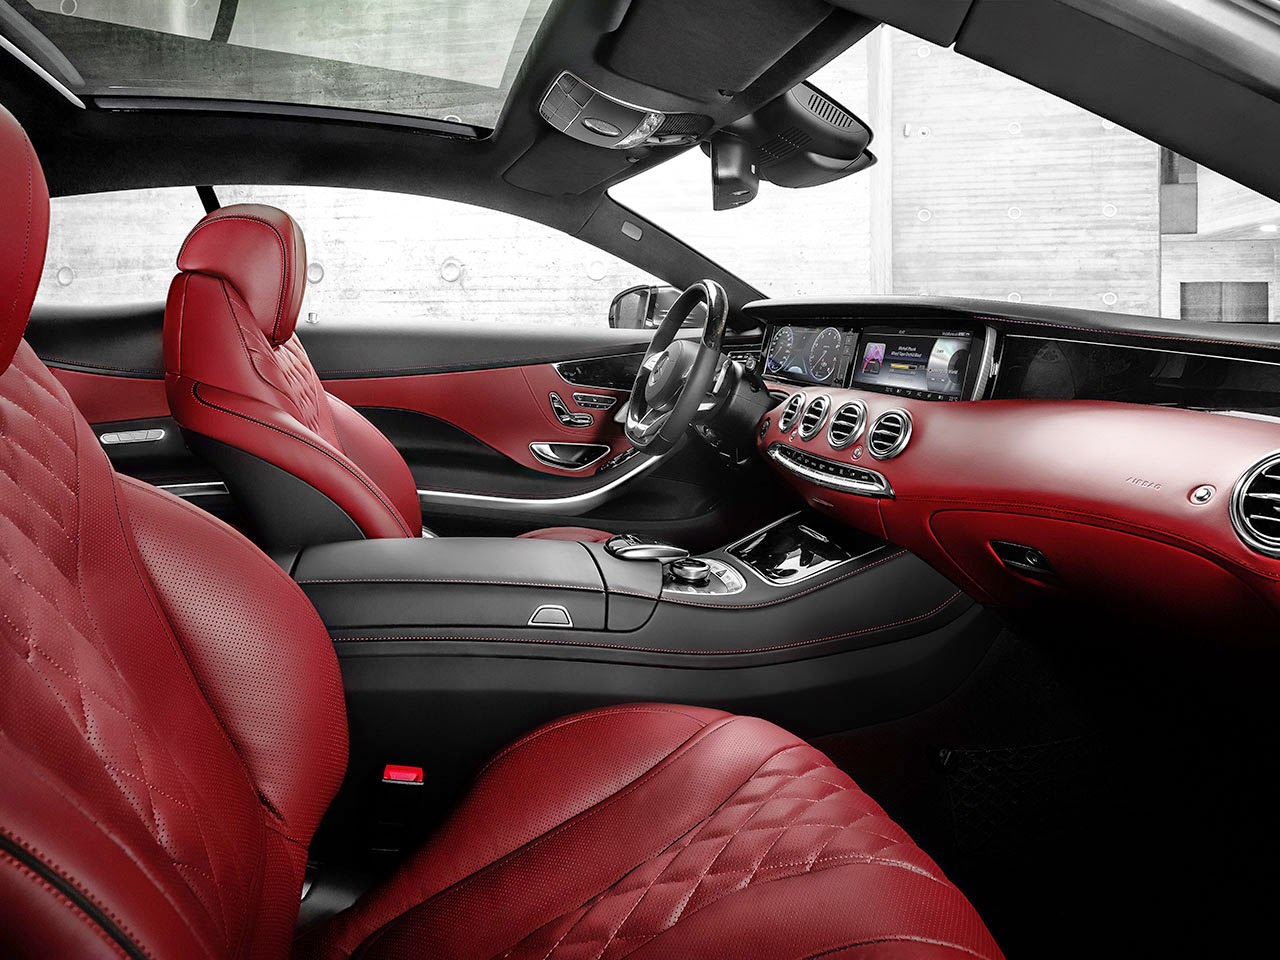 Mercedes-Benz S-Class Coupé interior red